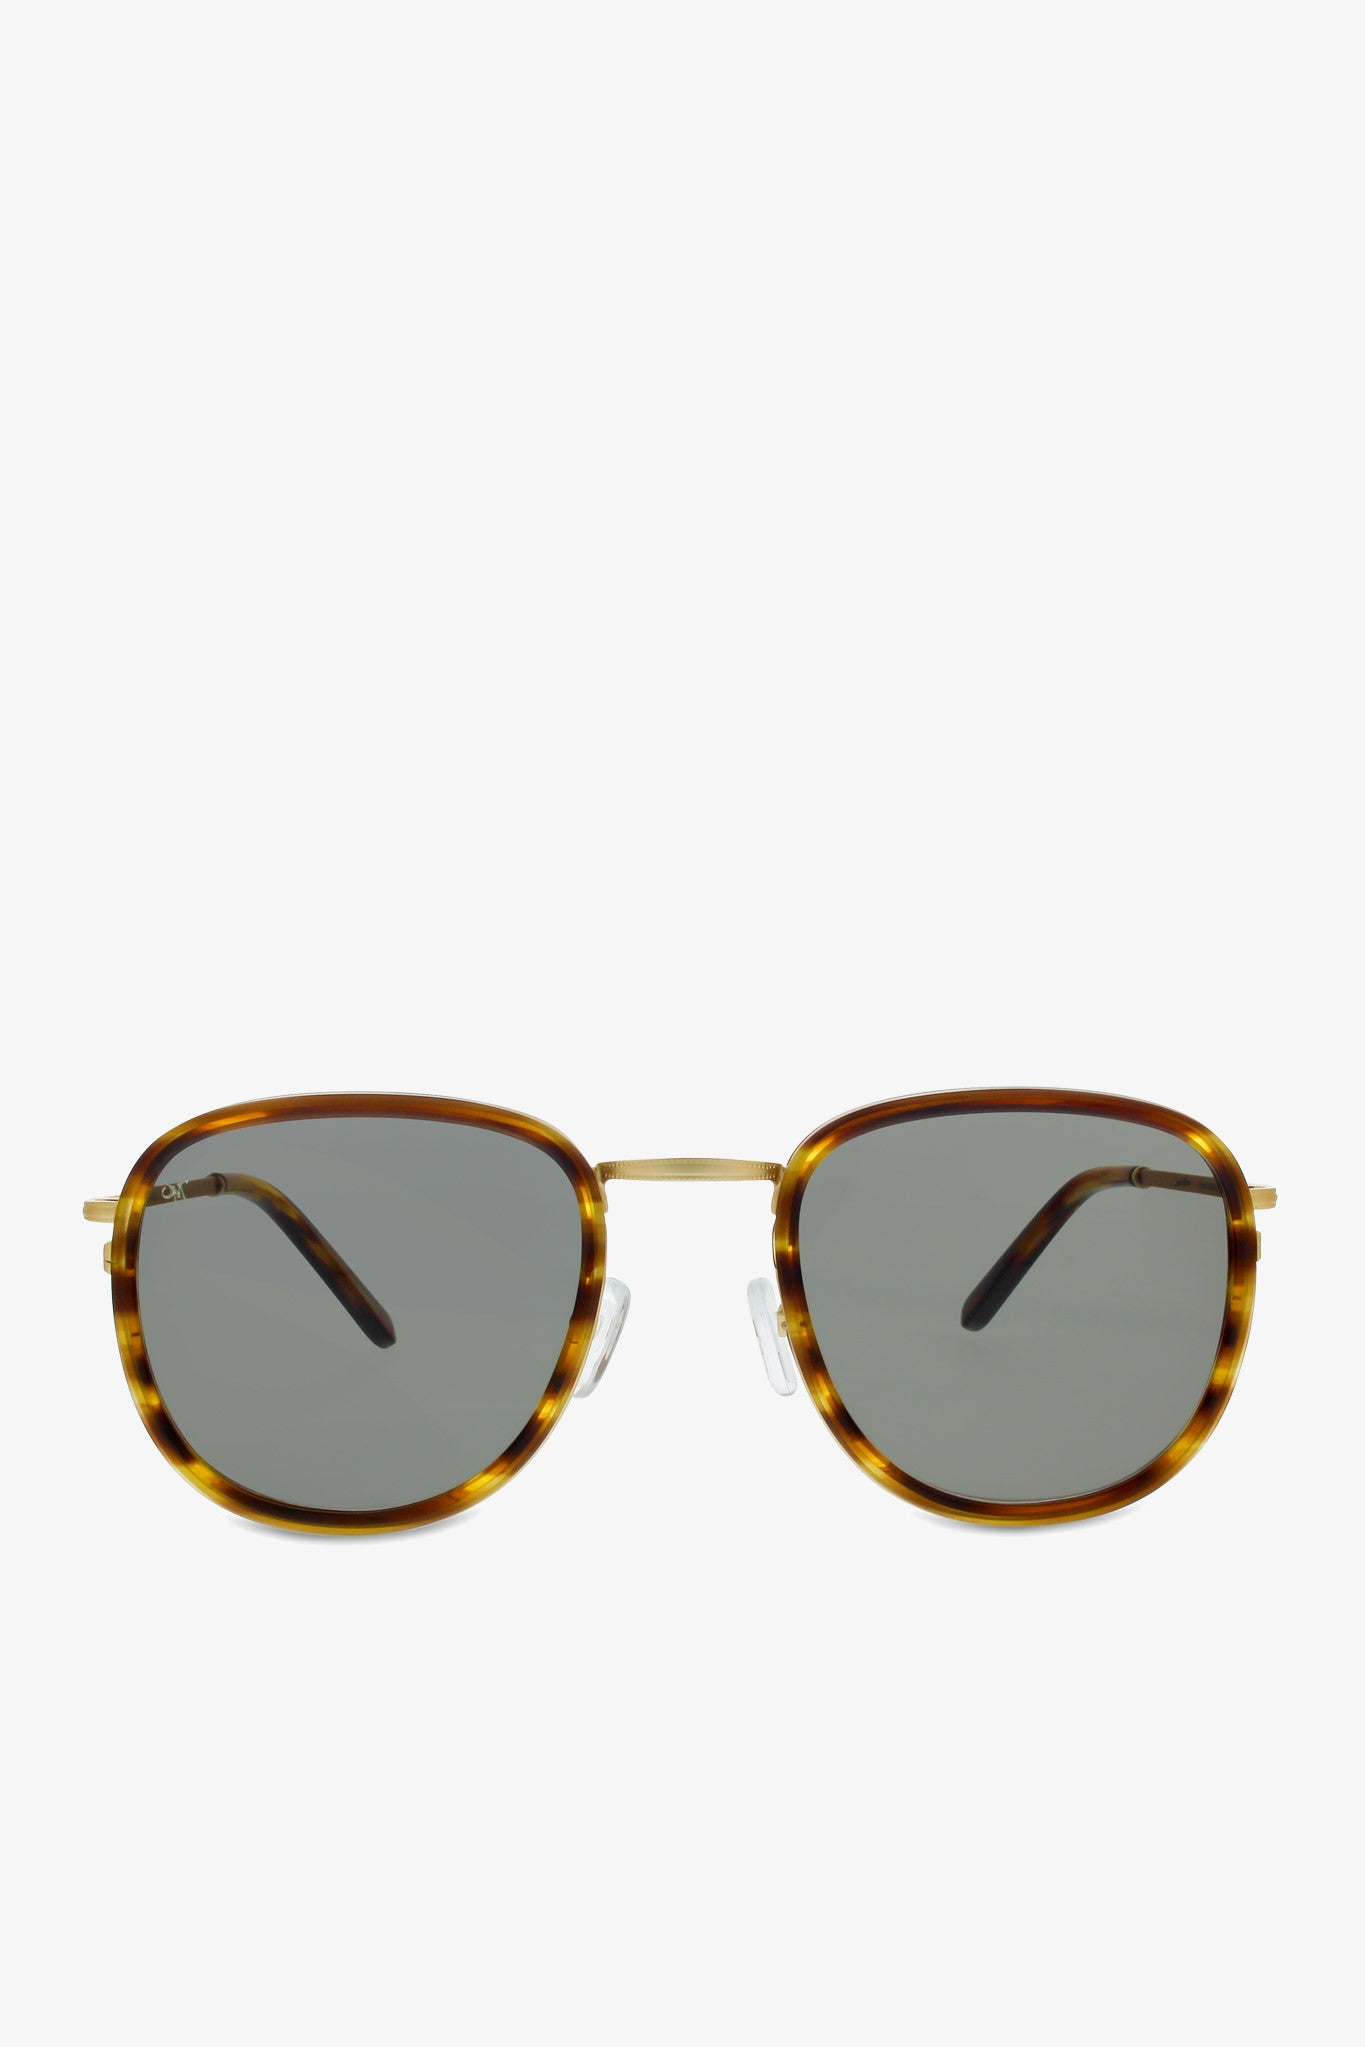 Smoke x Mirrors Golden brown sunglasses in caramel tortoise - Vert & Vogue